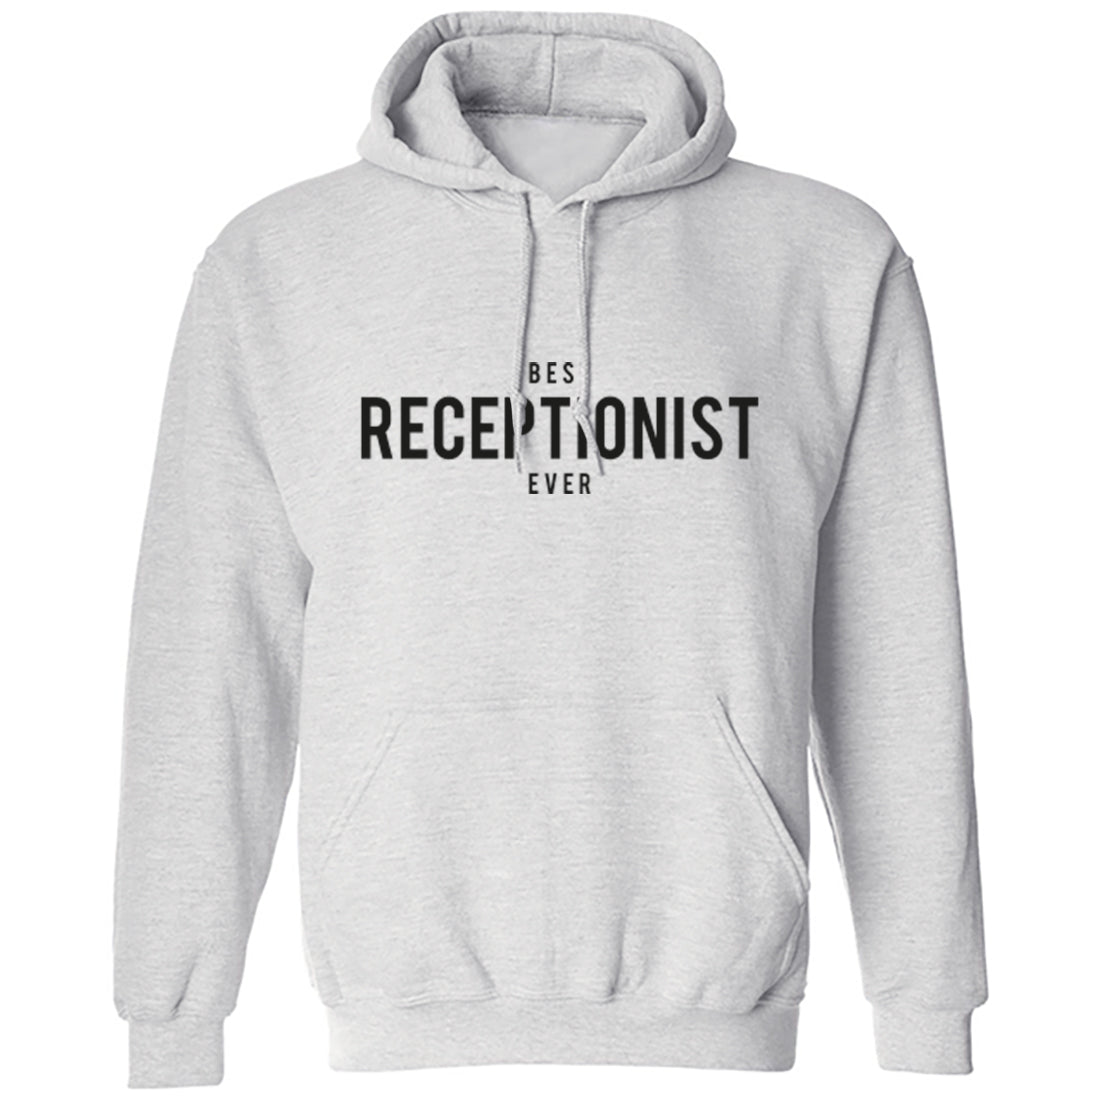 Best Receptionist Ever Unisex Hoodie K1498 - Illustrated Identity Ltd.